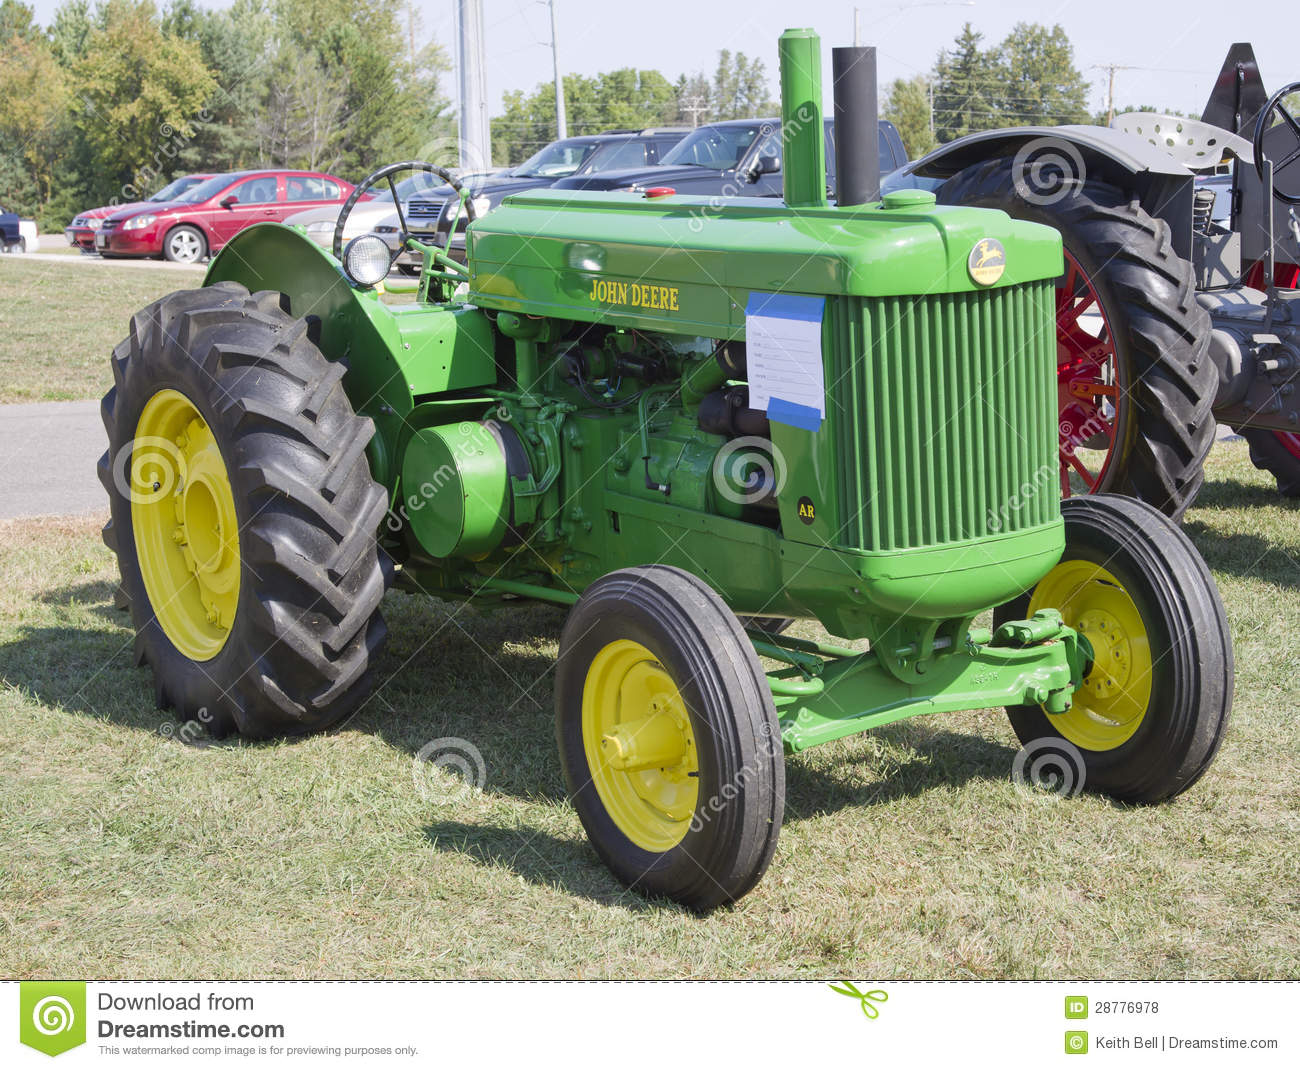 old antique tractors with Royalty Free Stock Photos 1950 John Deere Tractor Image28776978 on 1942 Cockshutt 30 furthermore 1957 Minneapolis Moline 445 U in addition Black White Photography besides Tpic46816 in addition Royalty Free Stock Photos 1950 John Deere Tractor Image28776978.